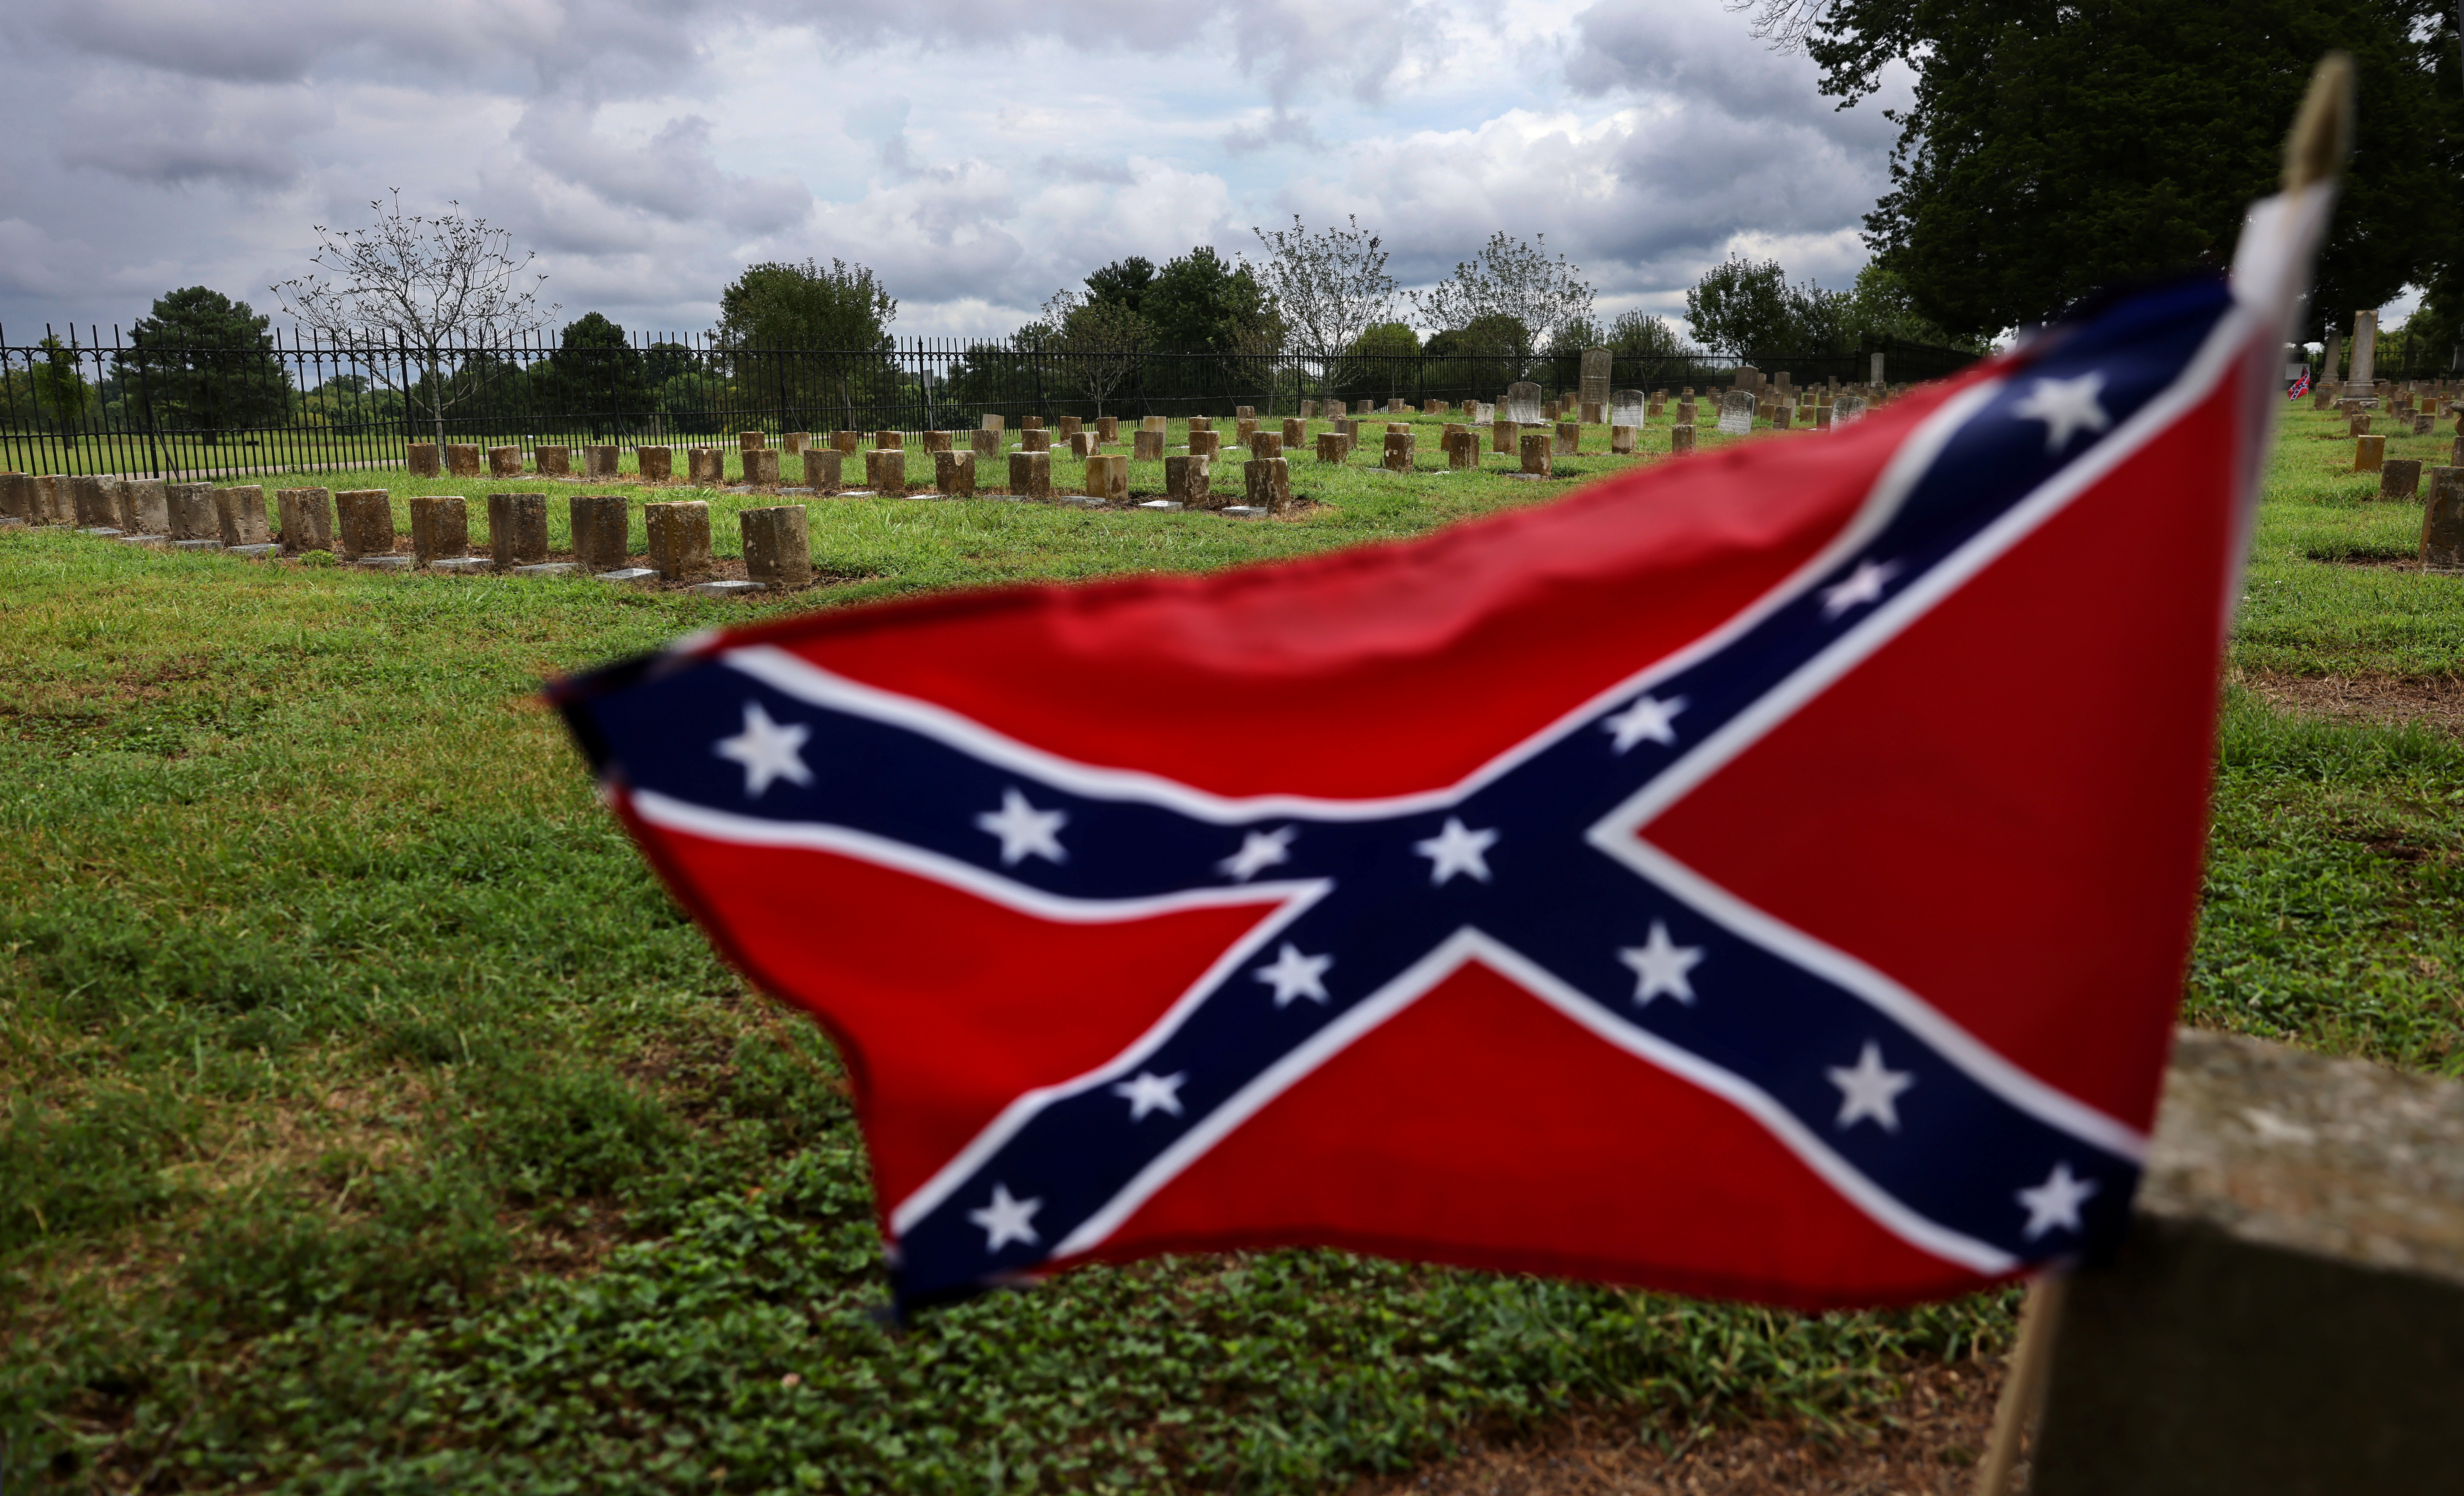 General view of the McGavock Confederate Cemetery on the grounds of the Carnton plantation in Franklin, Tennessee, U.S., August 16, 2021. Picture taken August 16, 2021. REUTERS/Evelyn Hockstein